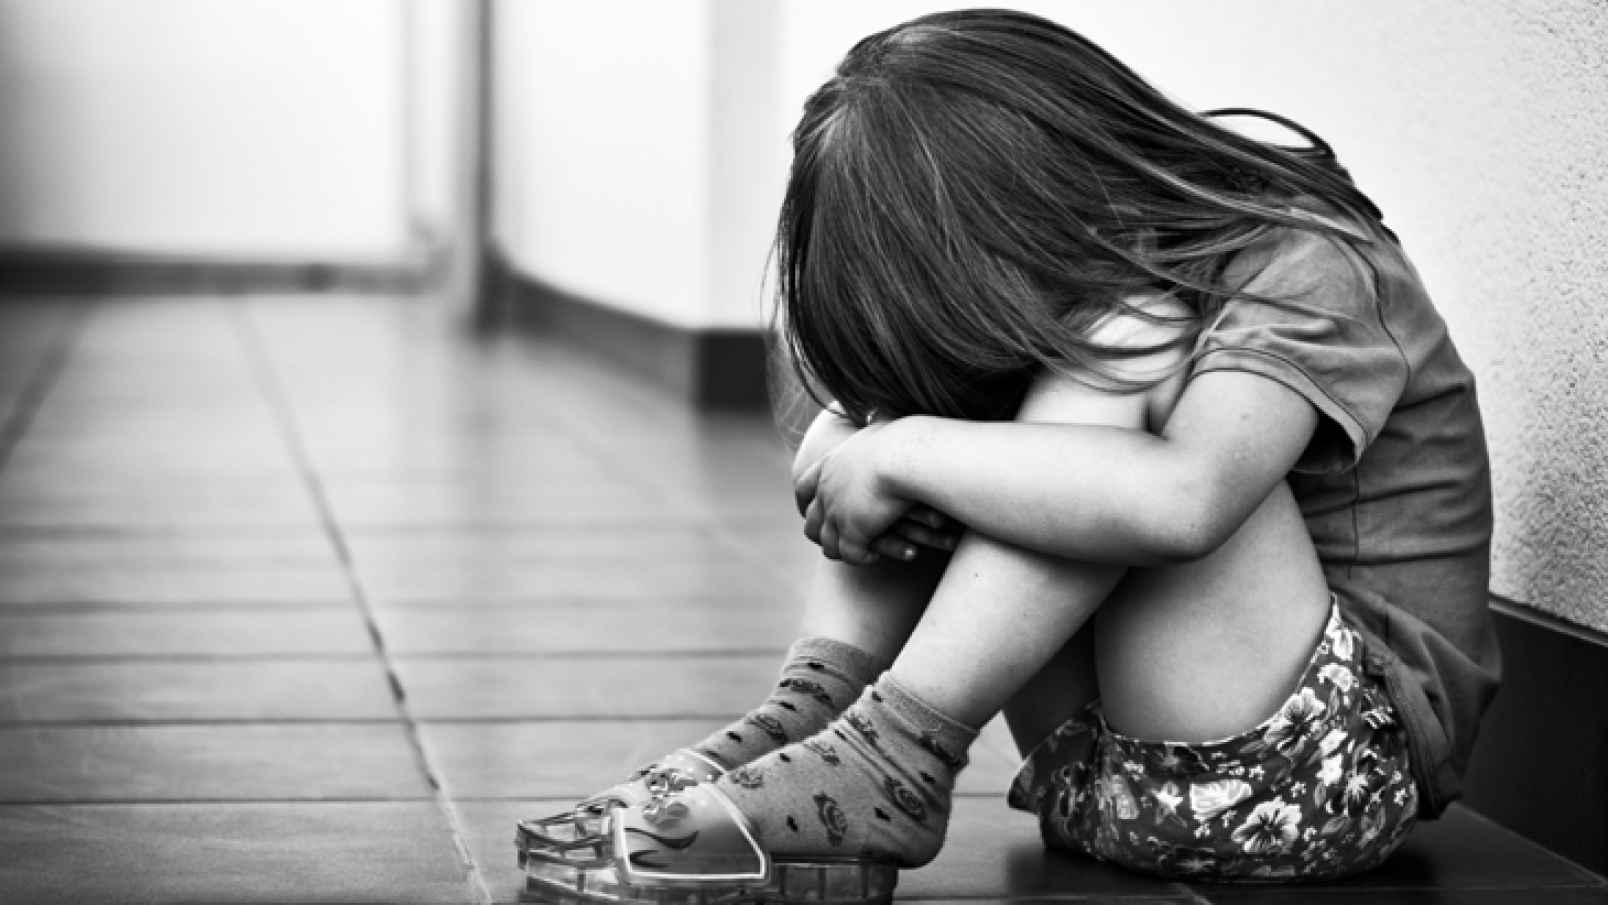 11 year old gives birth to a girl in Paraguay after being denied abortion